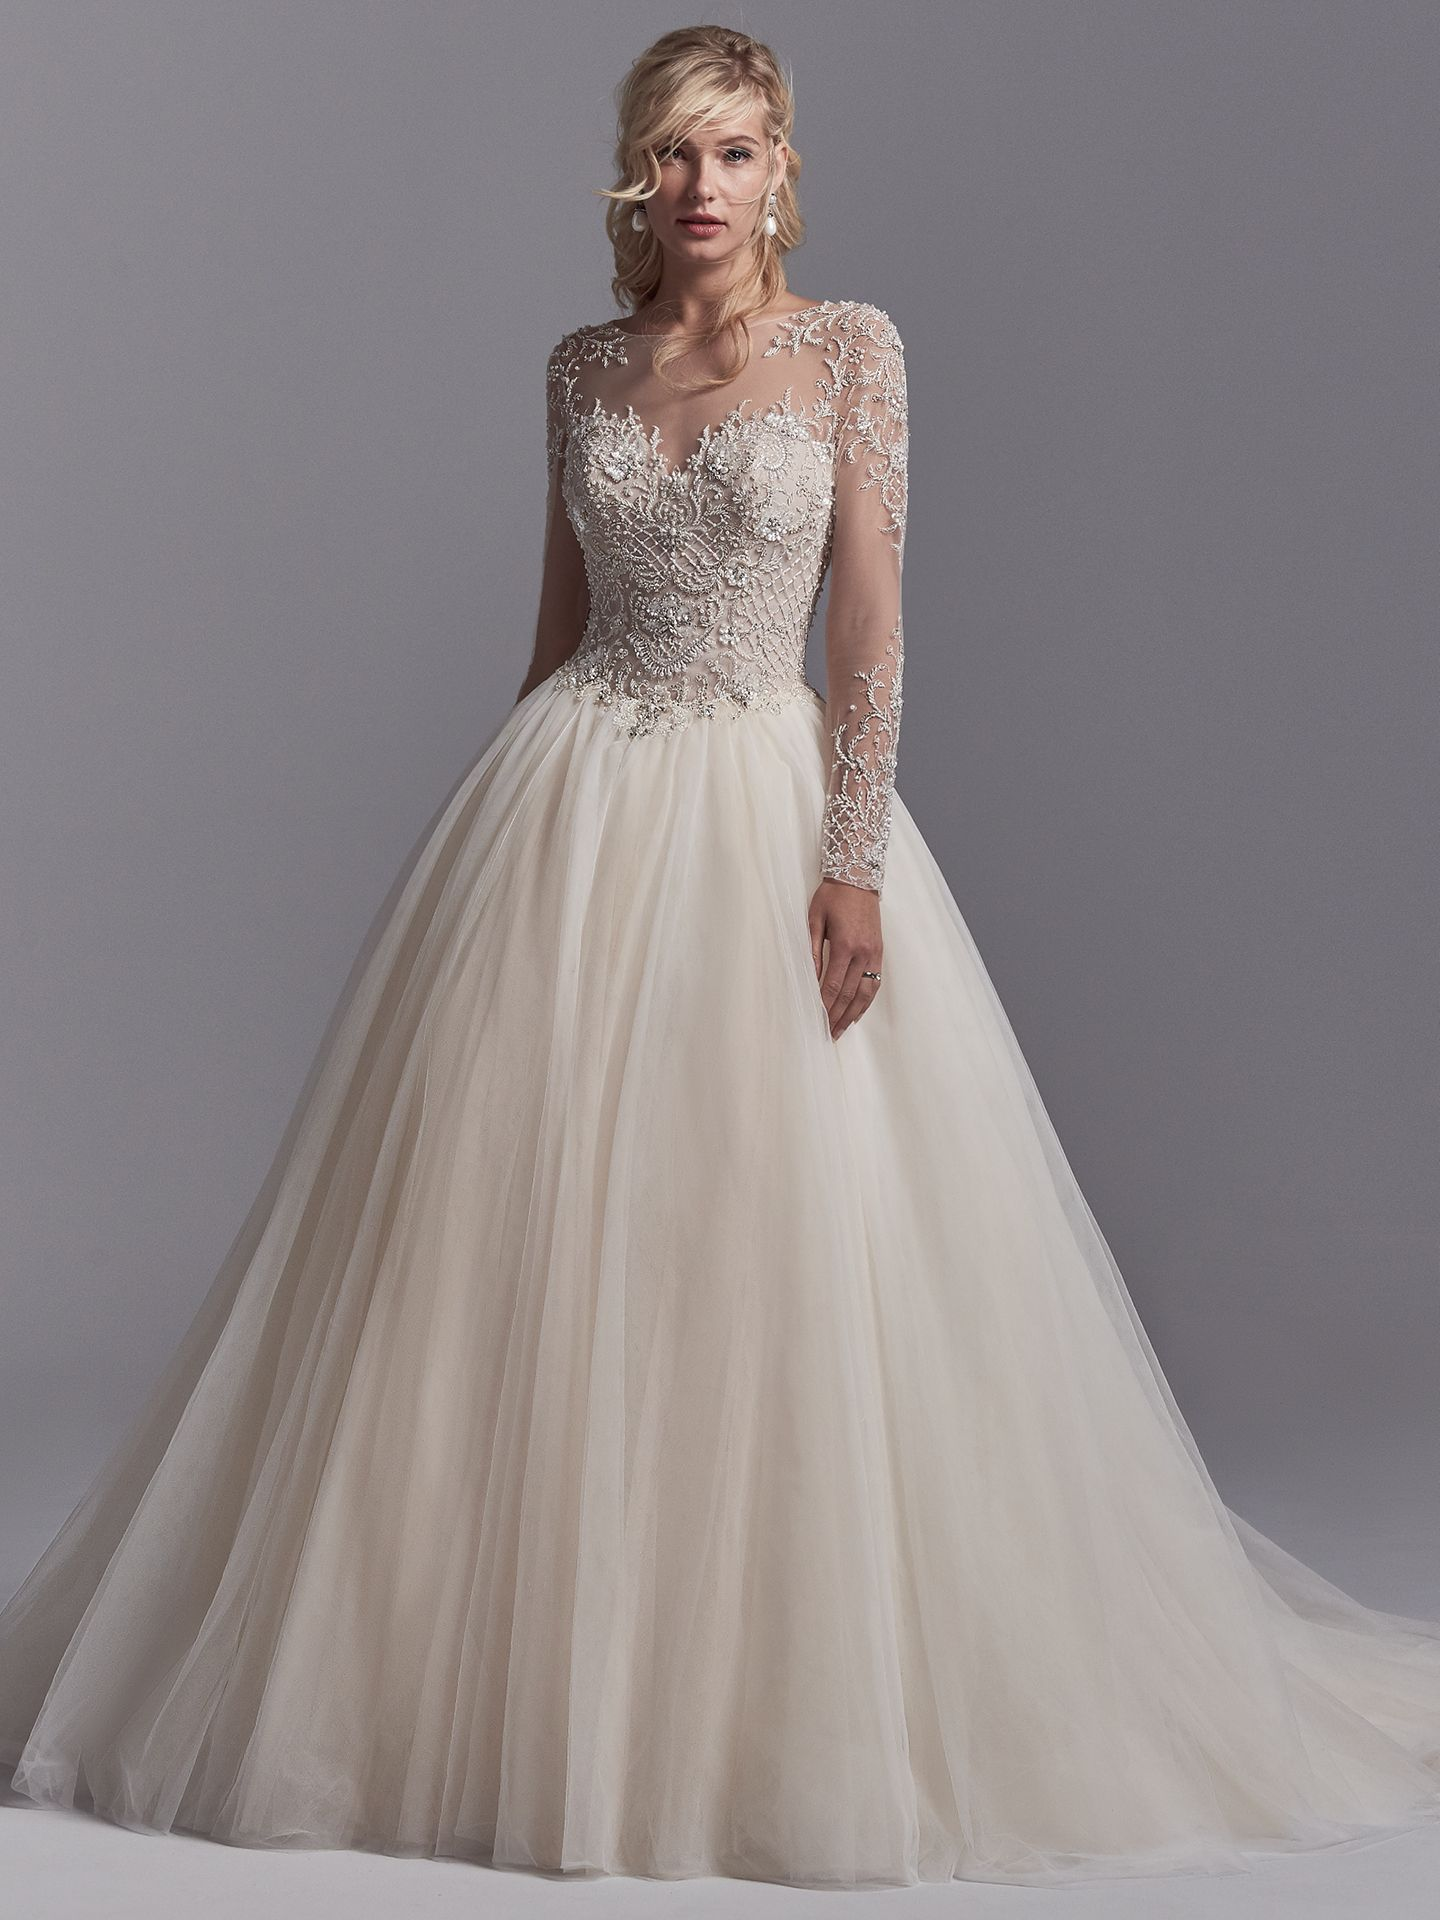 6 Best Wedding Dresses For A Rustic Calvin Dress By Sottero And Midgley